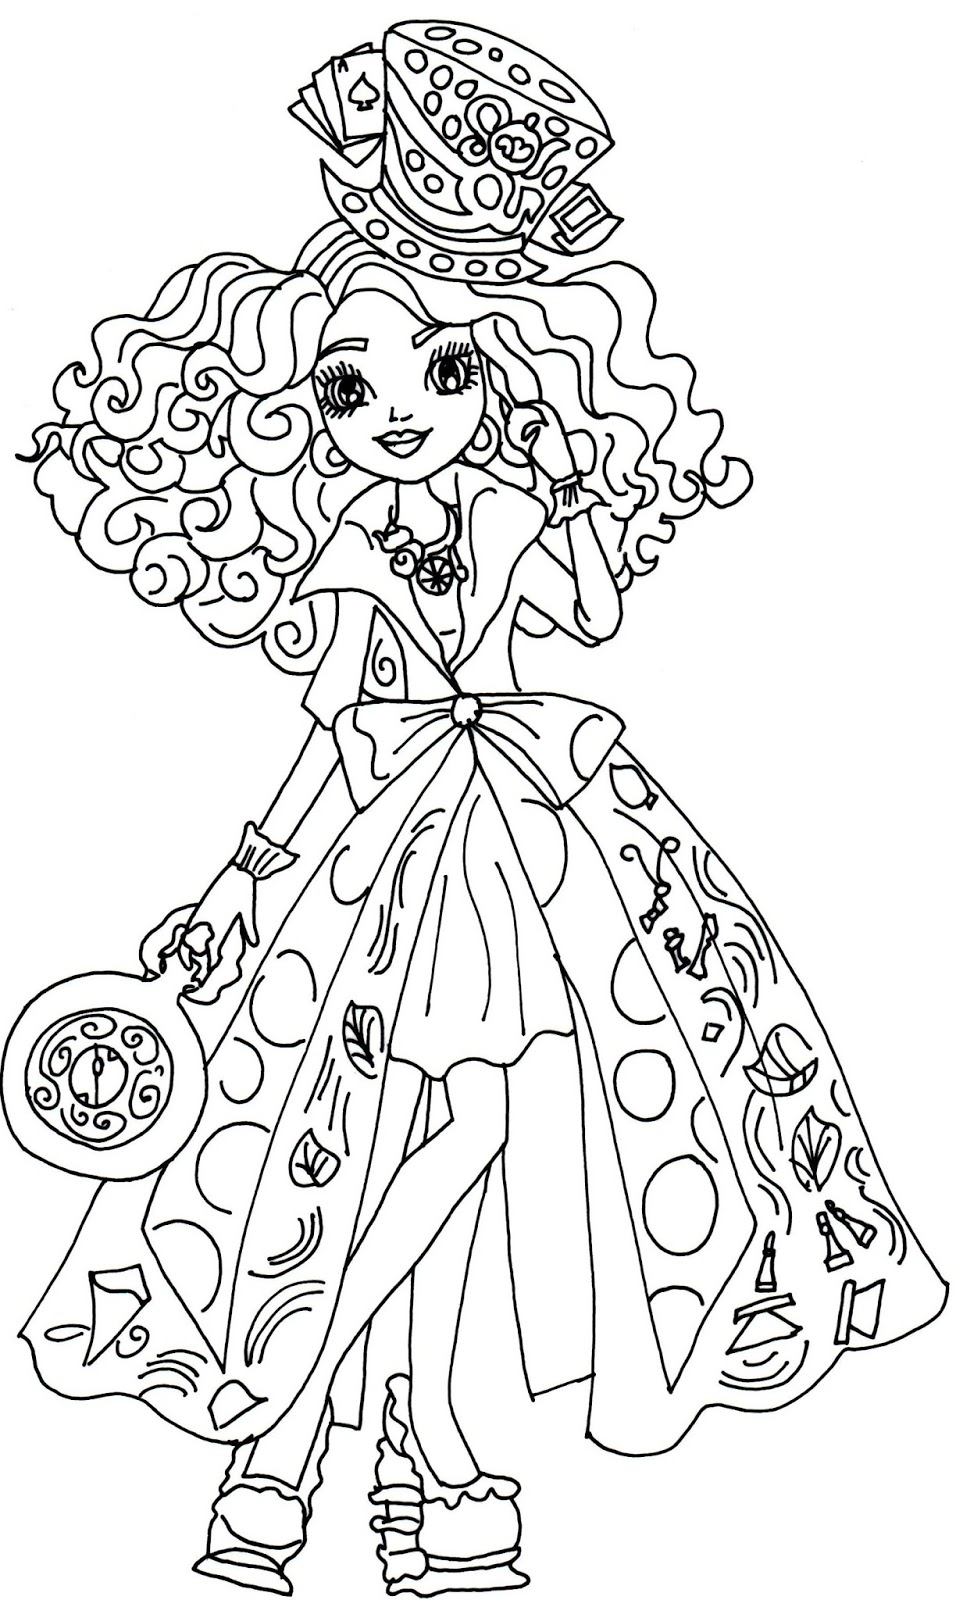 desenho de madeline hatter de ever after high para colorir